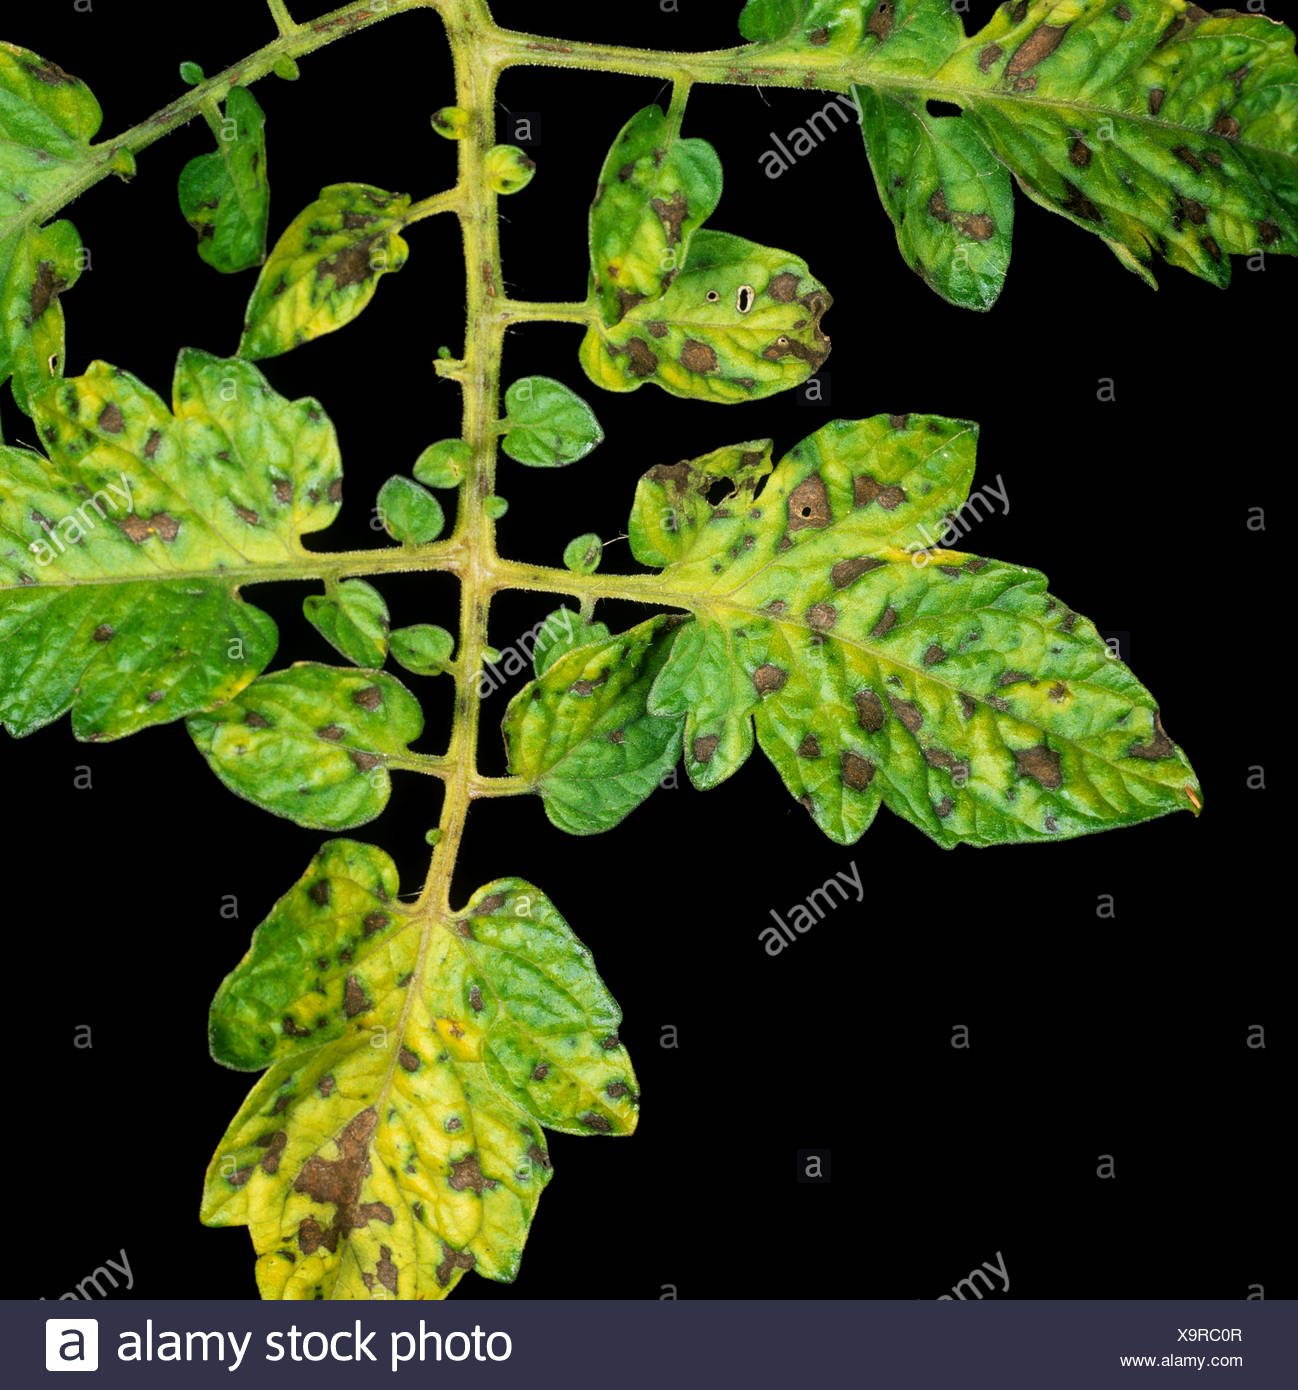 Manganese Mn deficiency symptoms on glasshouse grown tomato plant leaves - Stock Image